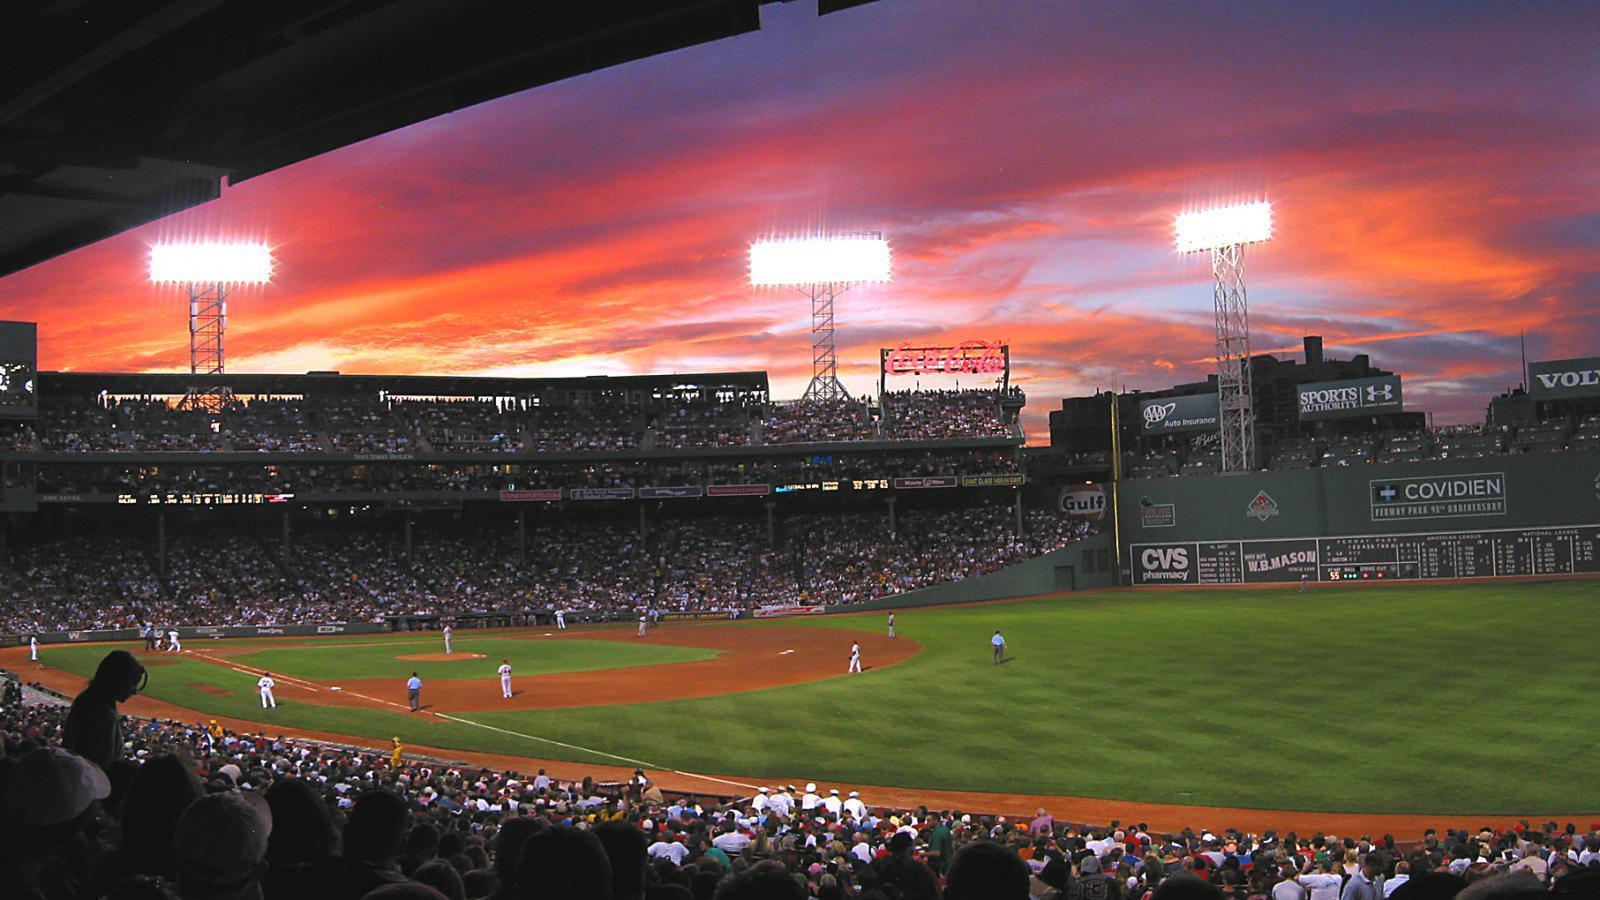 Red Sox Fenway Park Wallpaper by HD Wallpapers Daily